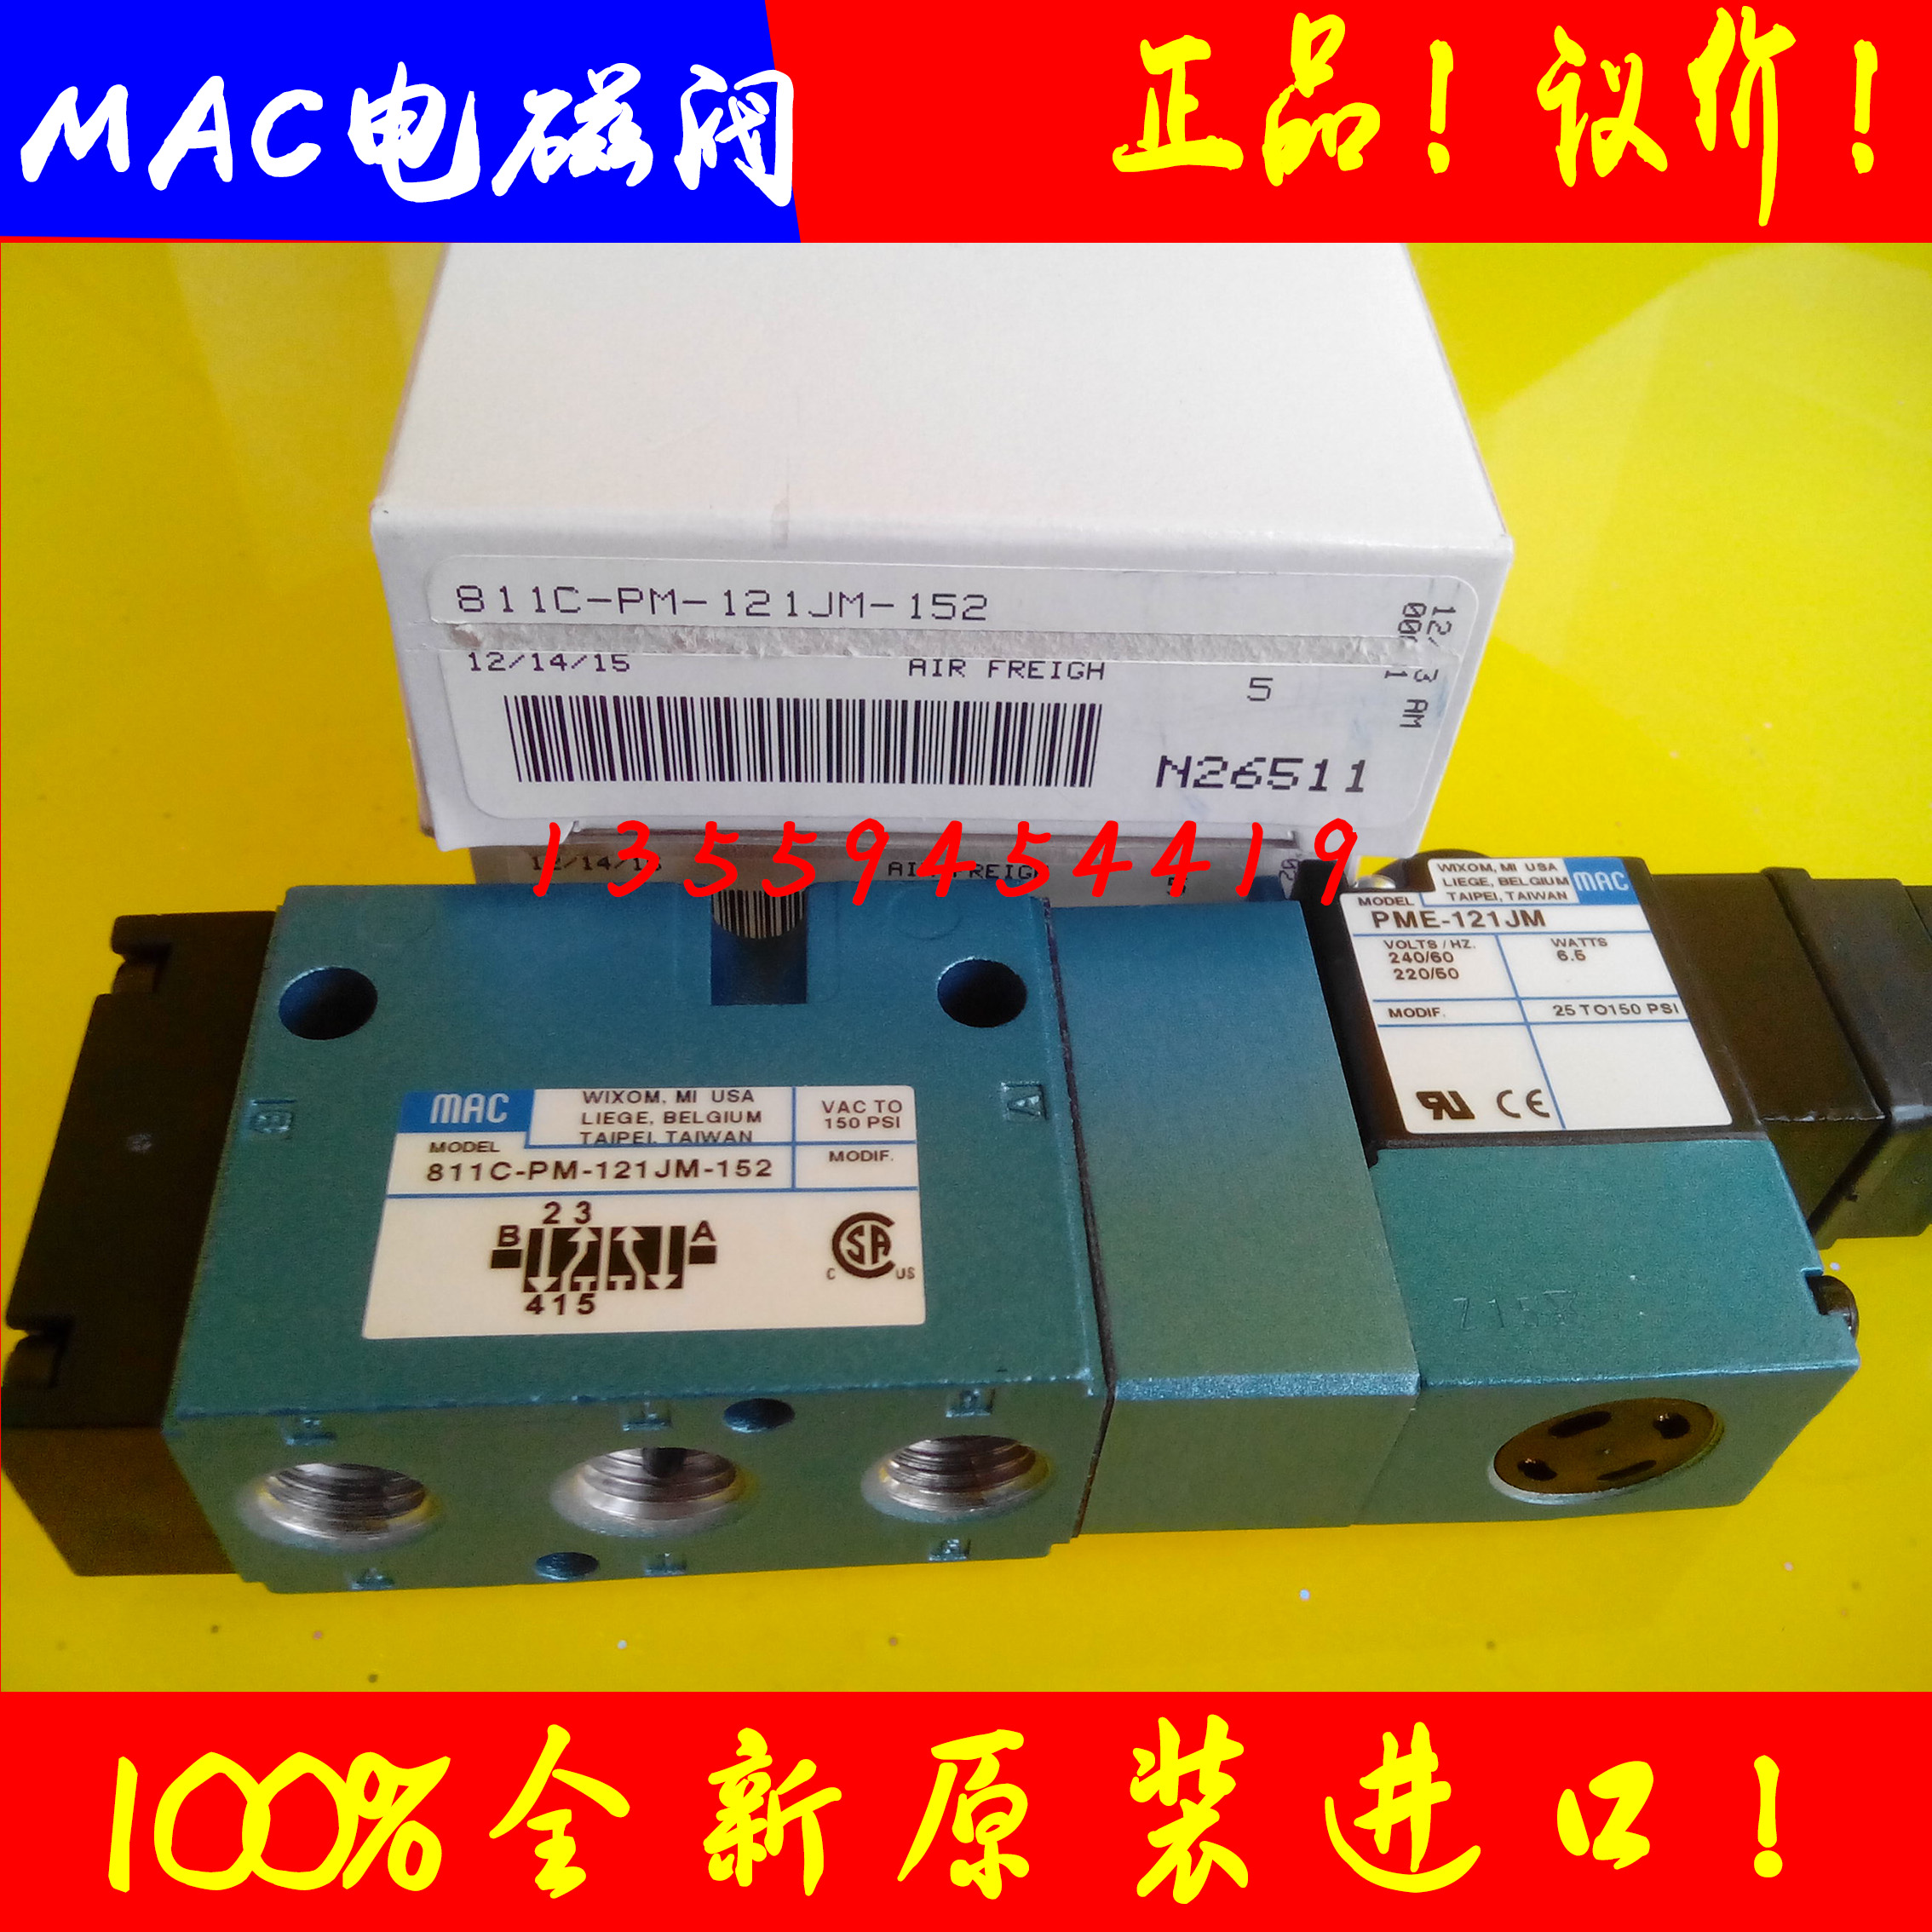 / US - Mac magnetventil 811C-PM-121JM-152 (PME-121JM) echte Original post.